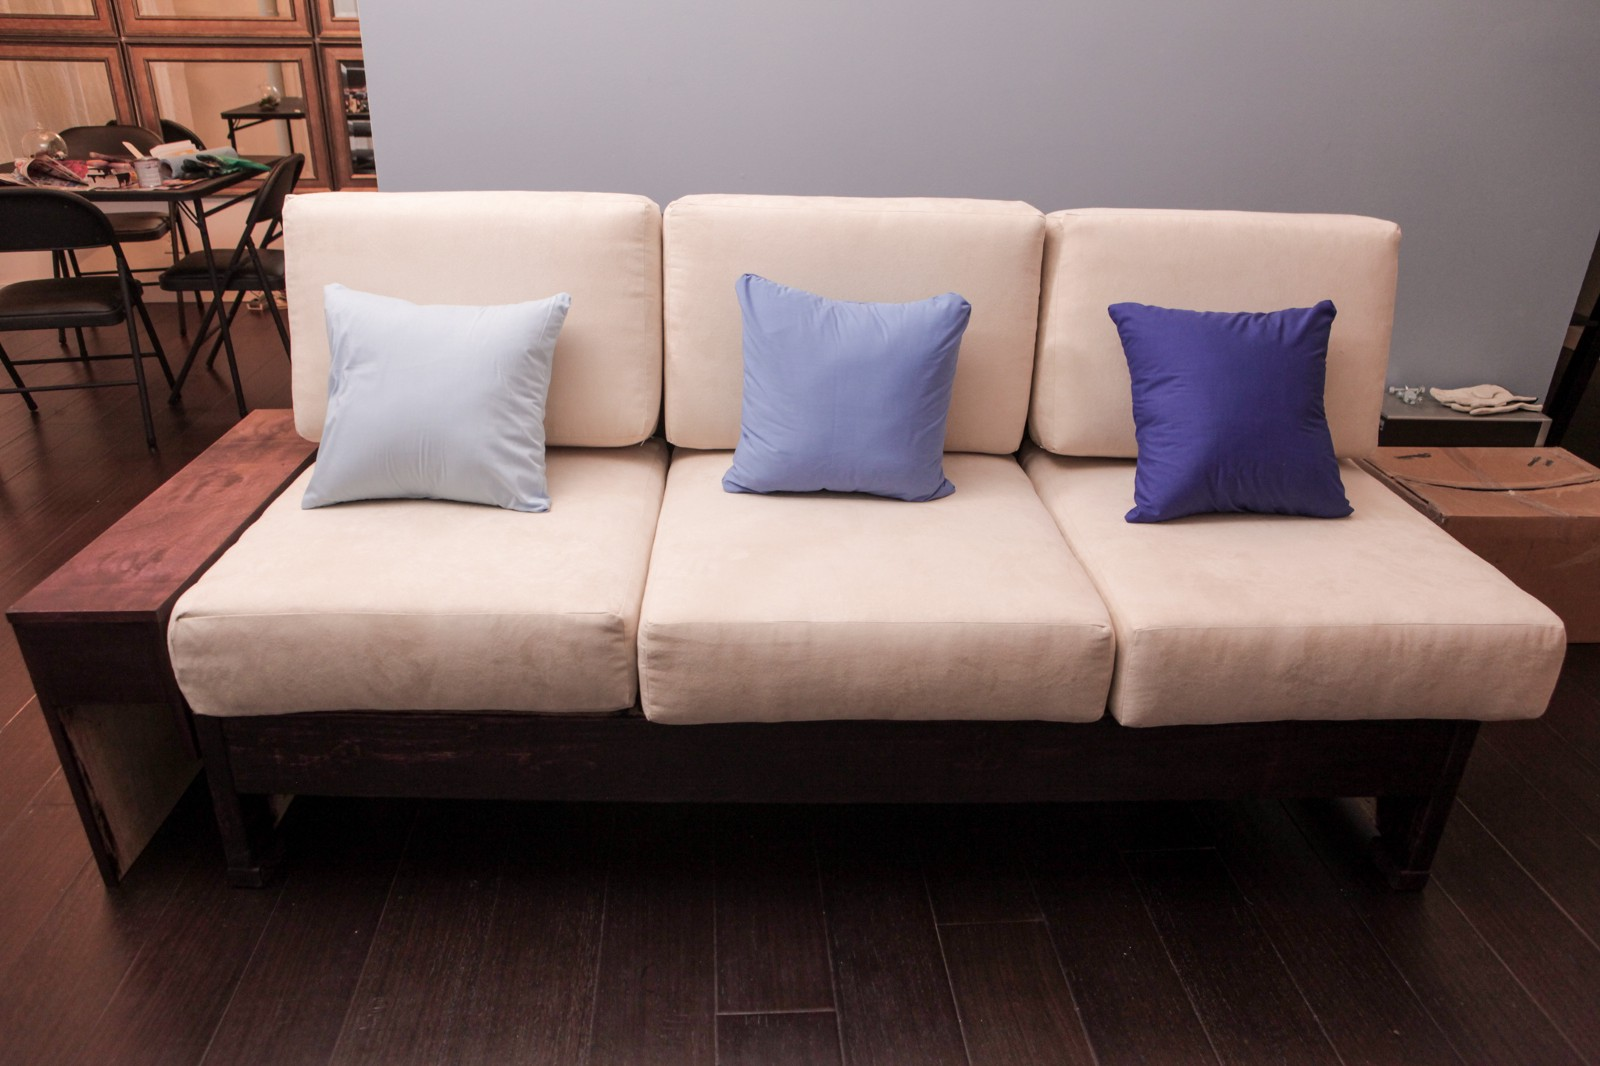 The Completed Couch With Accent Pillows And Stained Wood.